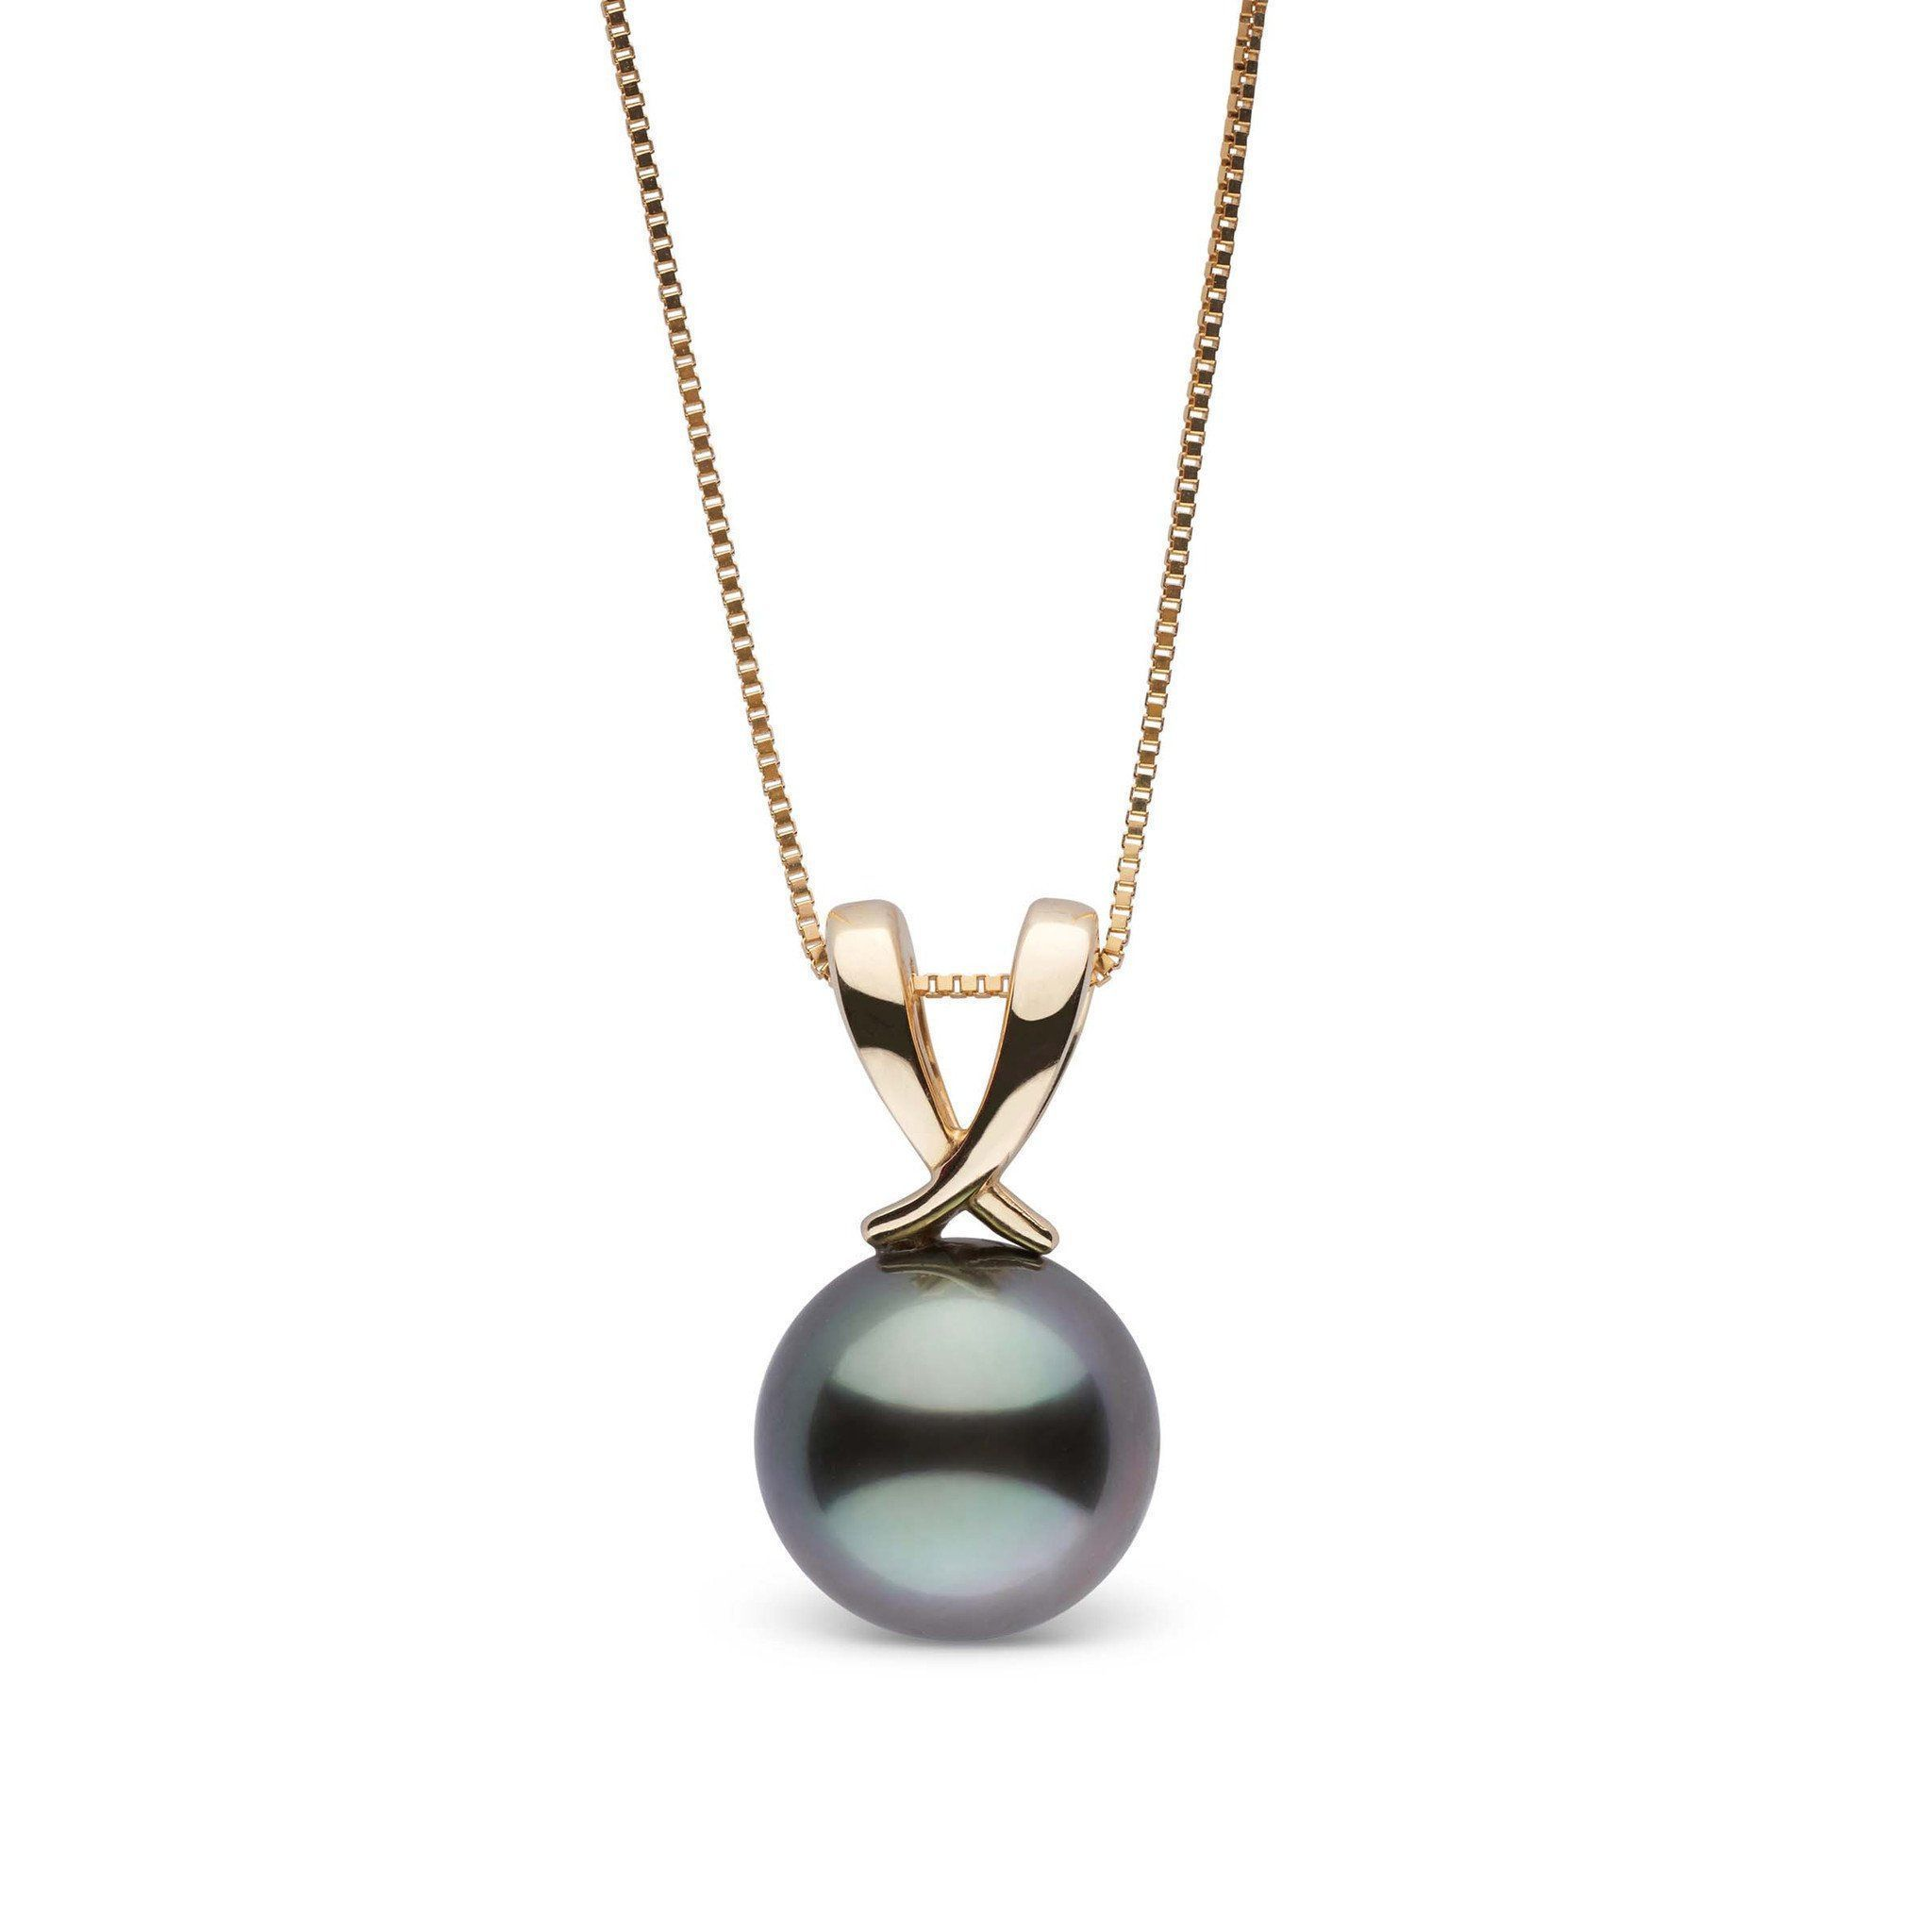 Ribbon Collection 9.0-10.0 mm Tahitian Pearl Pendant